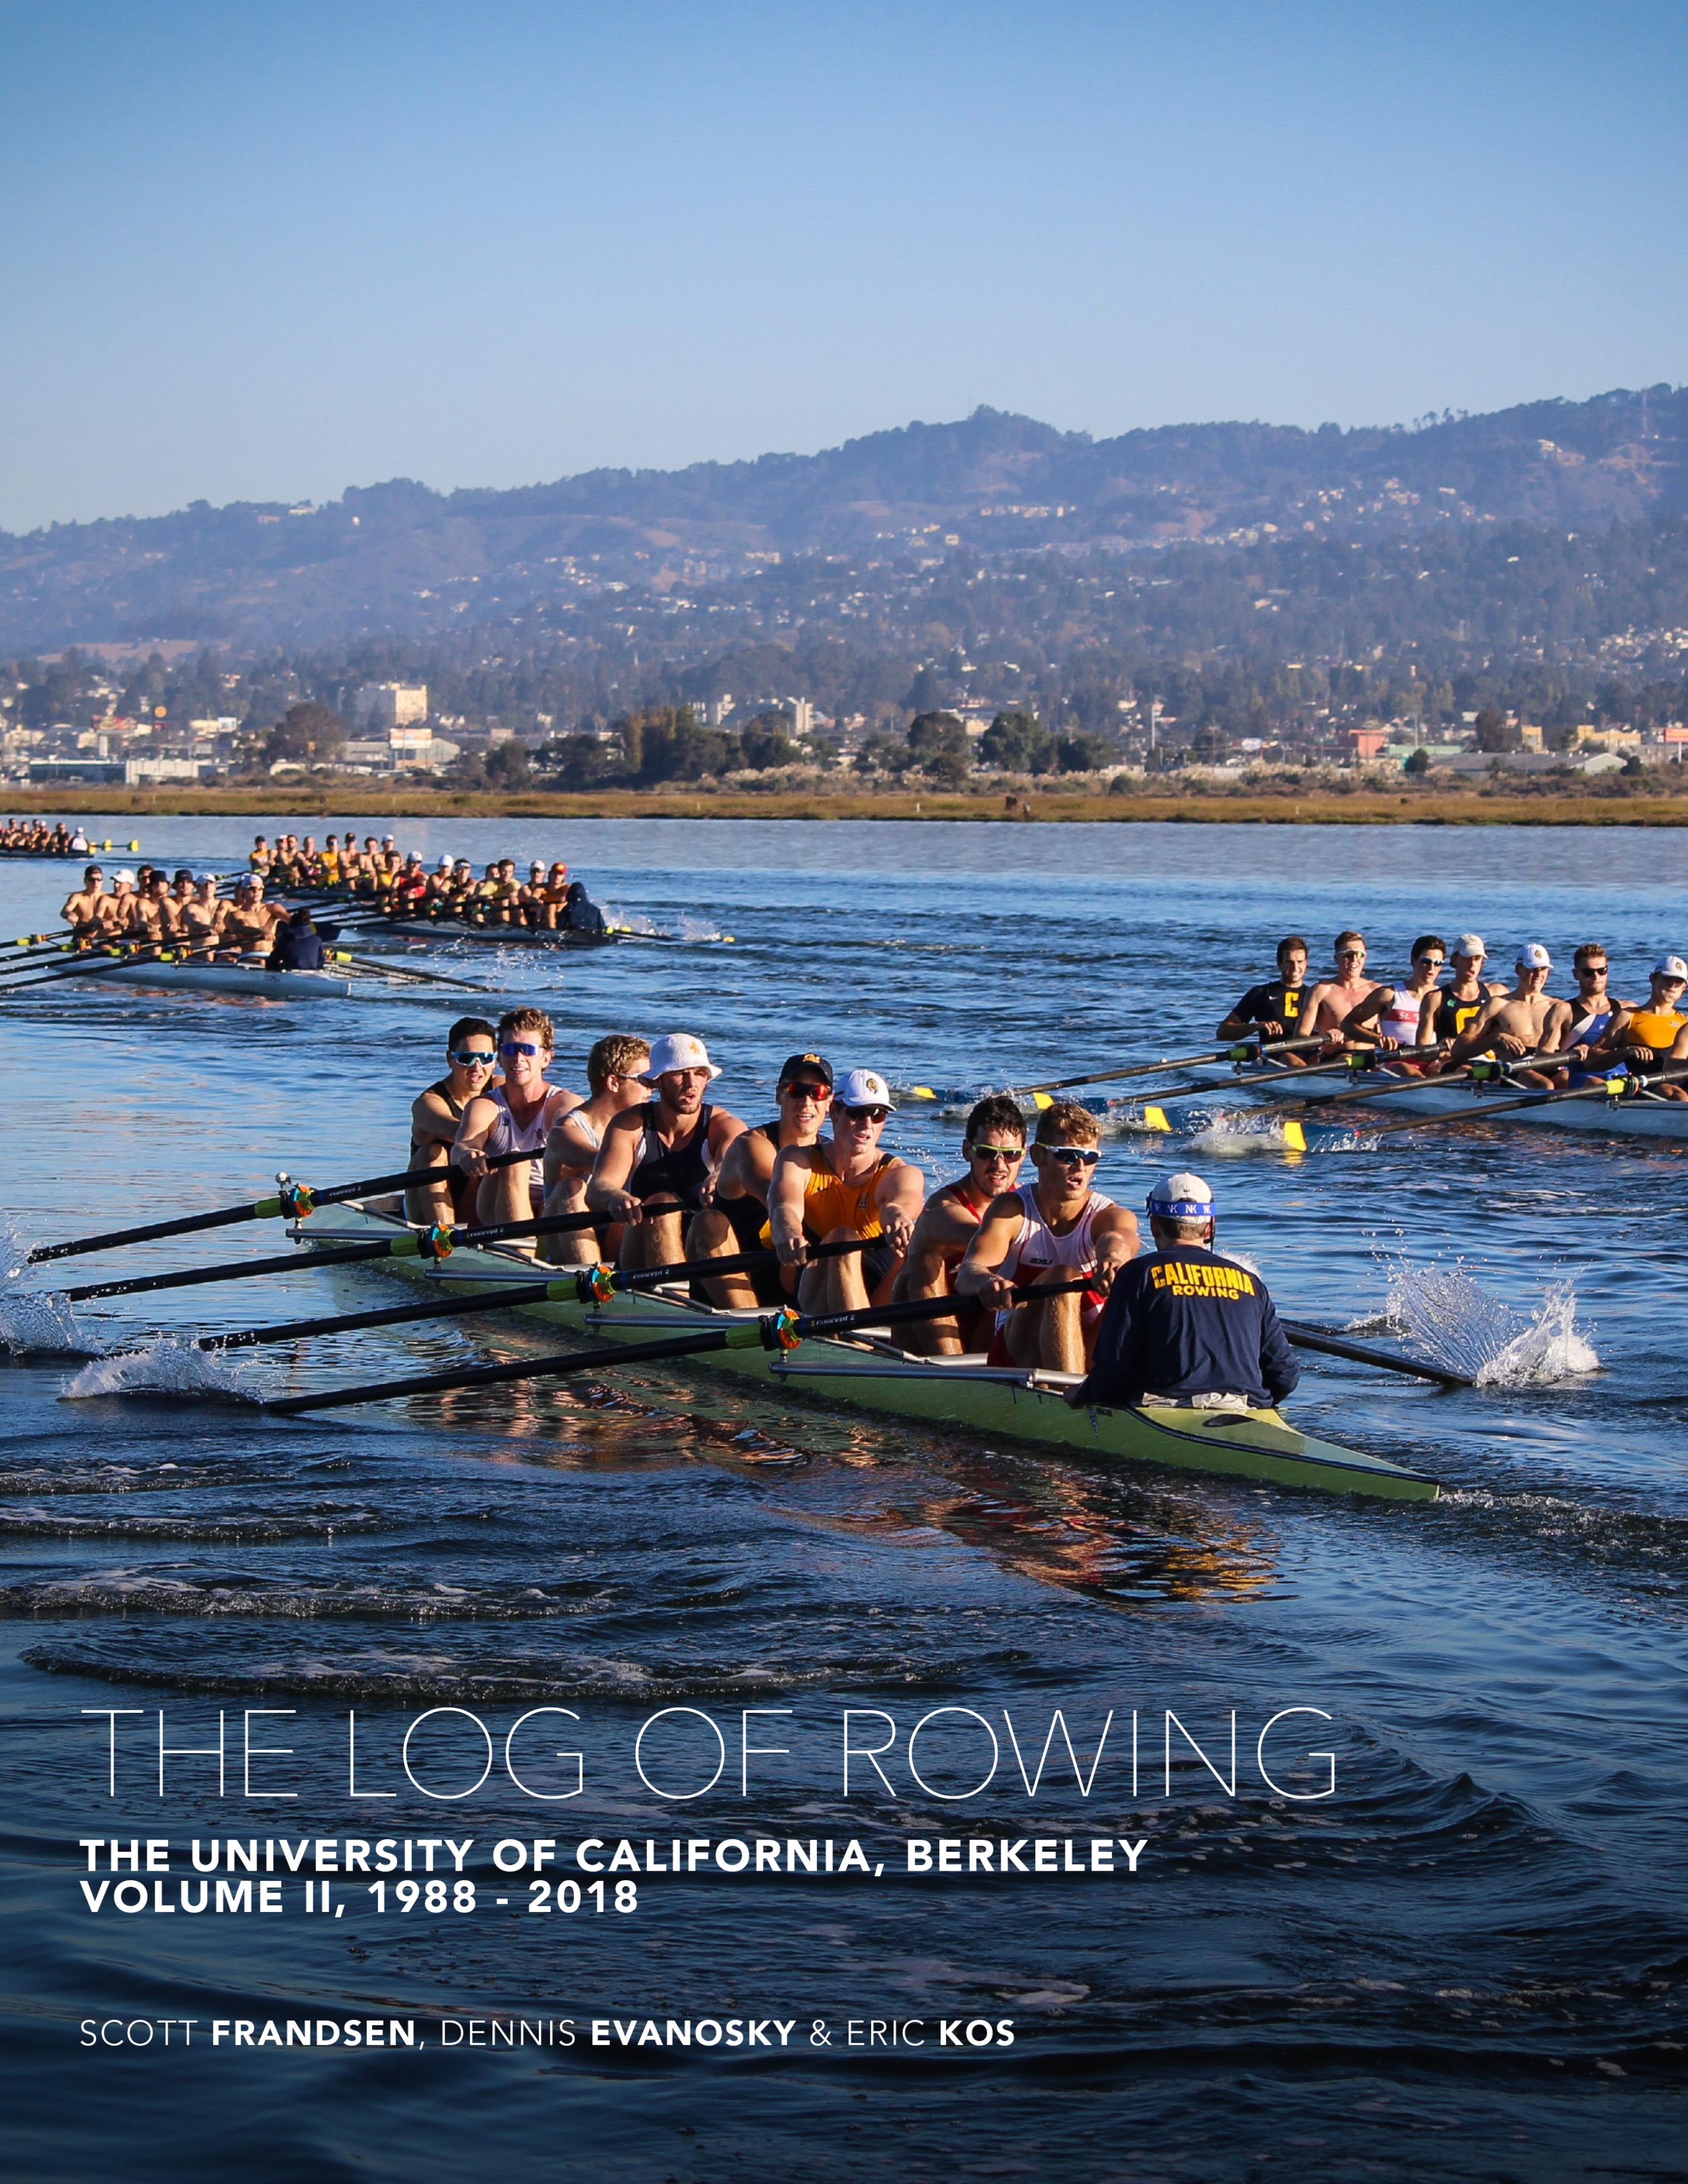 The Log of Rowing II - The Log of Rowing II at the University ofCalifornia, Berkeley from 1988-2018.To order a hard copy of either the Log I orLog II, please email the Friends of Cal Crewat friendsofcaliforniacrew@gmail.com.